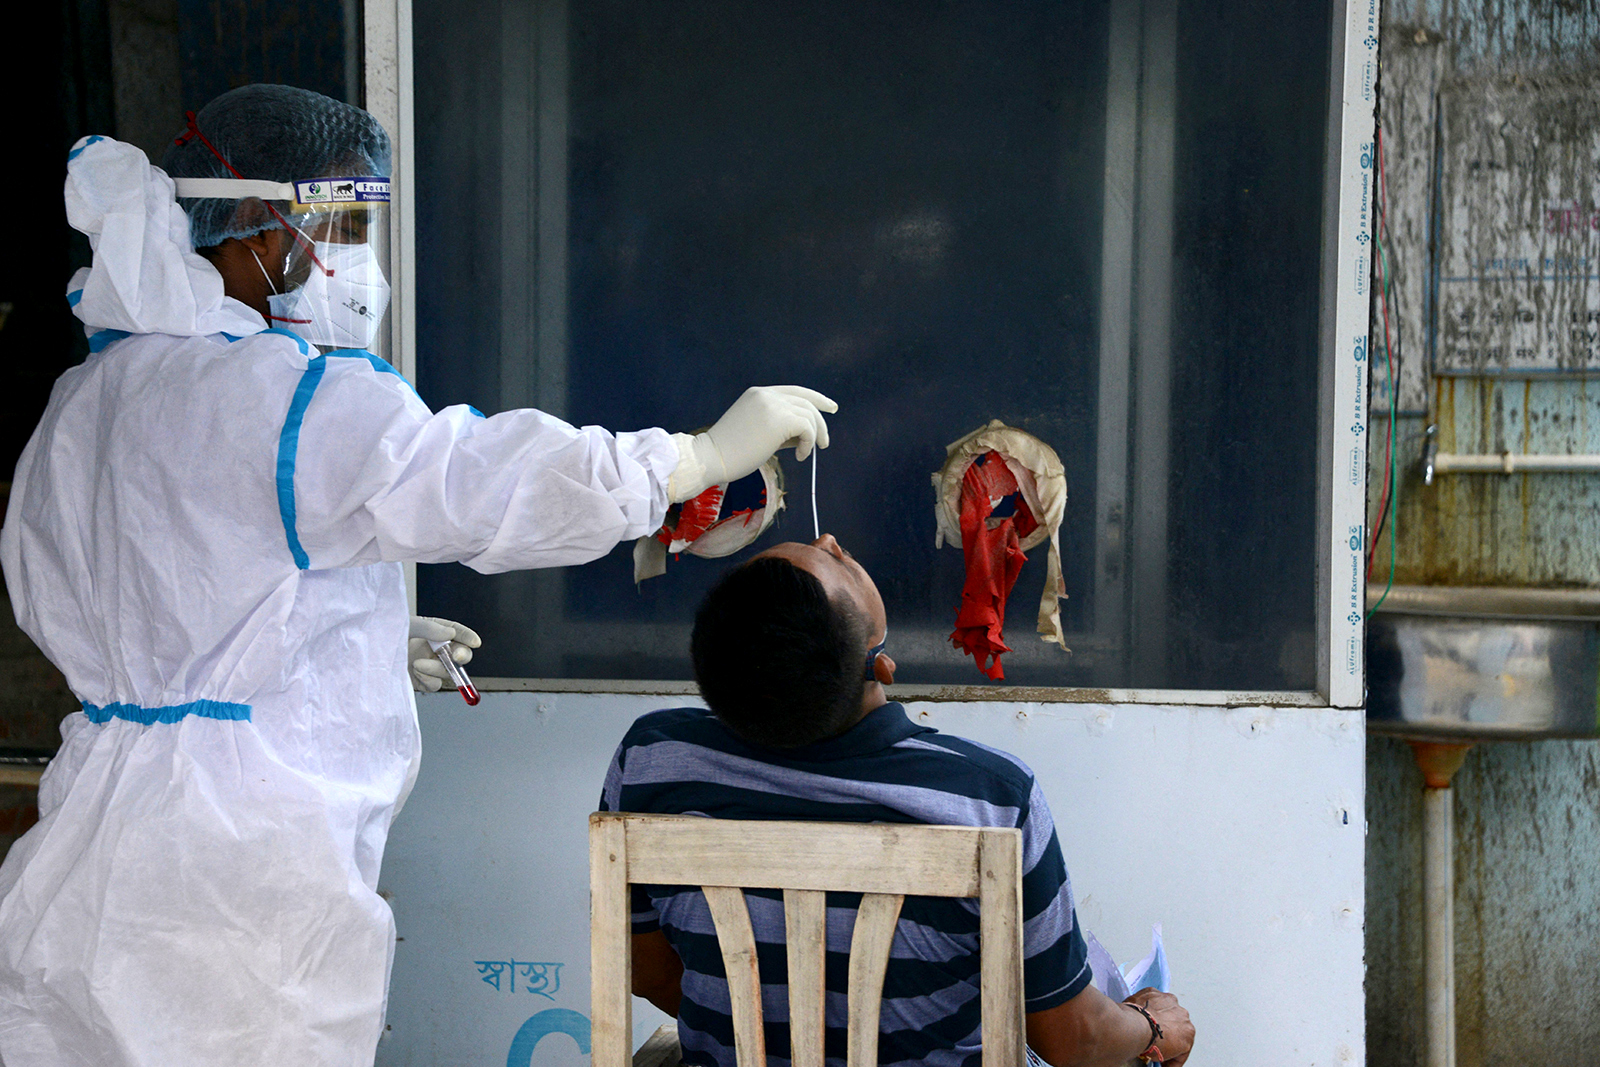 A health worker collects nasal swab for a Covid-19 coronavirus RT PCR test at the North Bengal Medical College and Hospital on the outskirts of Siliguri, India, on May 13.